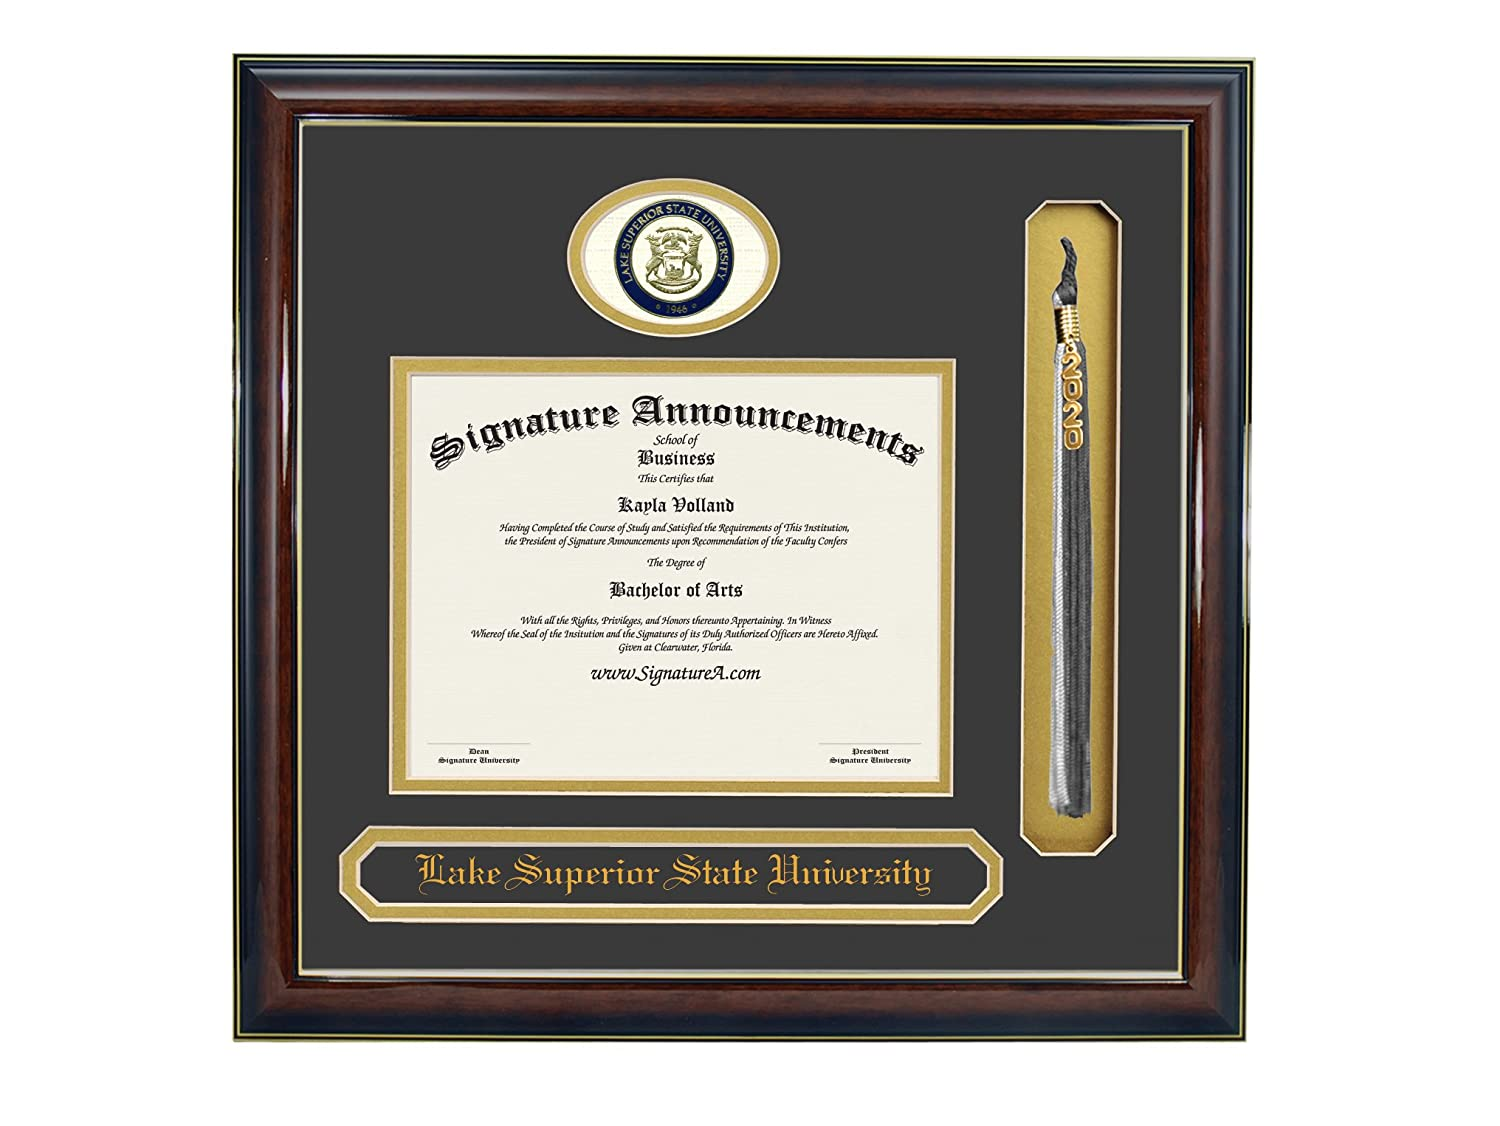 Signature Announcements Lake-Superior-State-University Undergraduate Name /& Tassel Graduation Diploma Frame 16 x 16 Gold Accent Gloss Mahogany Sculpted Foil Seal